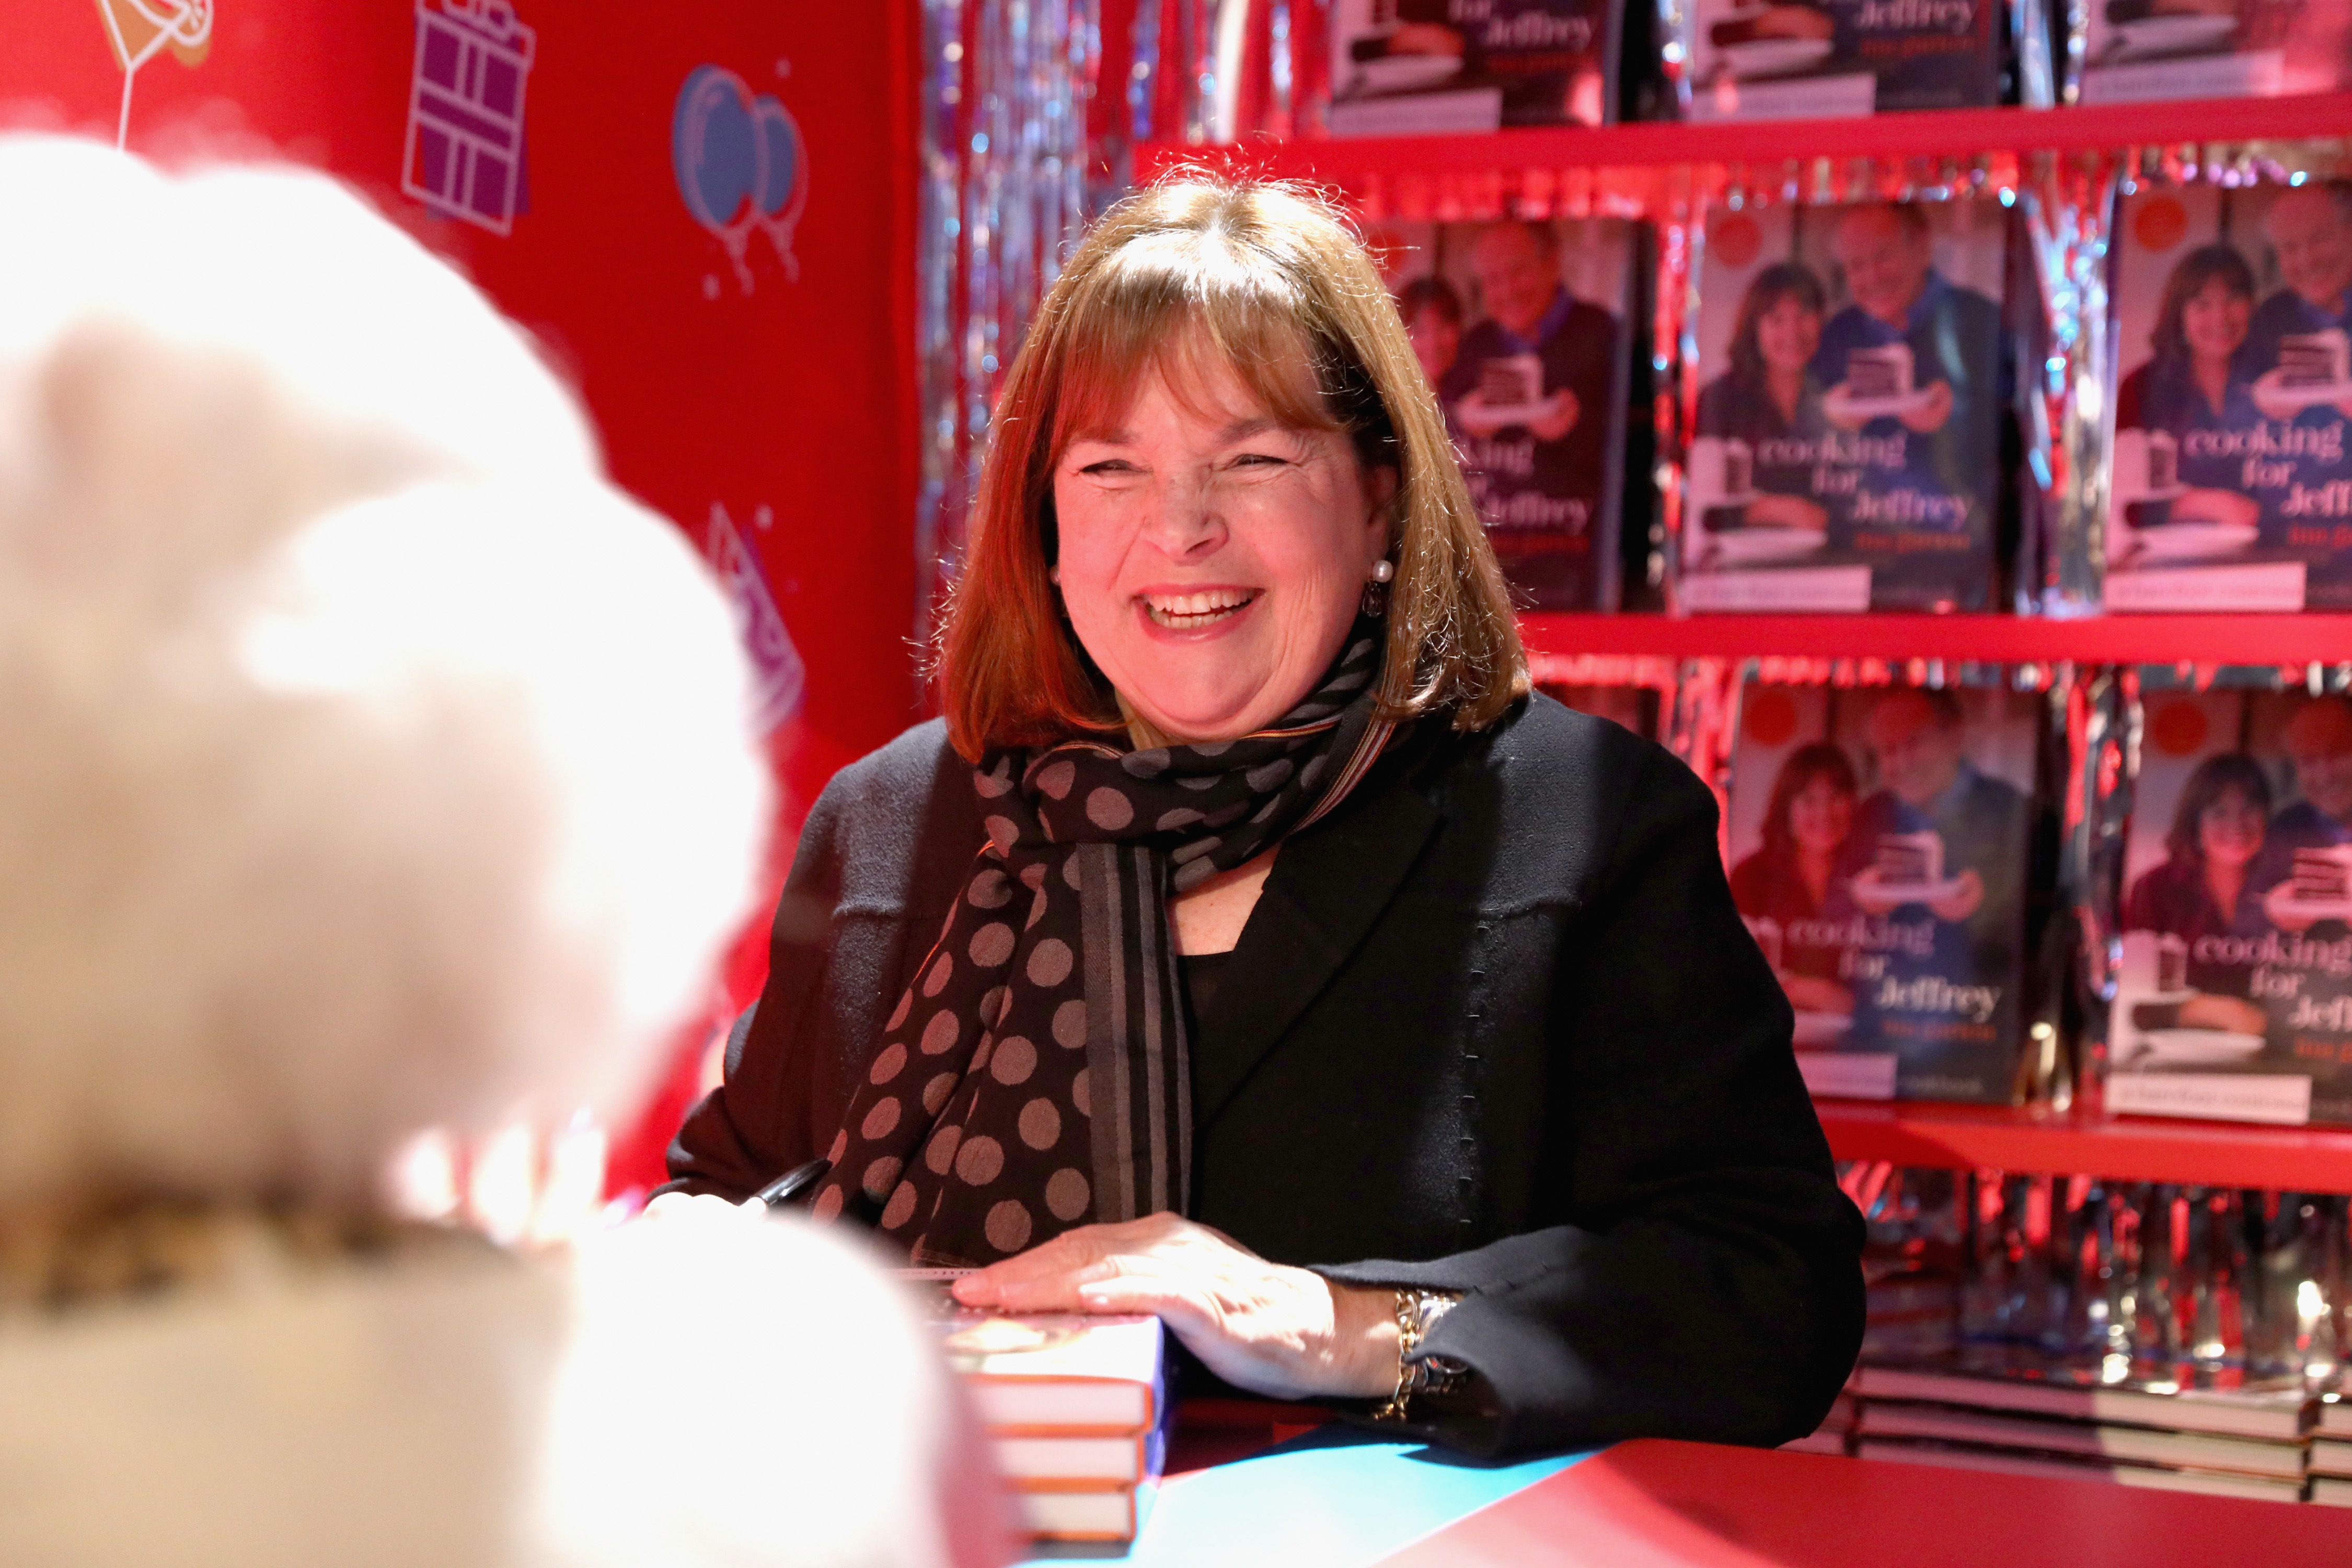 Watch Ina Garten Bake Cookies with Elmo from <i>Sesame Street</i>